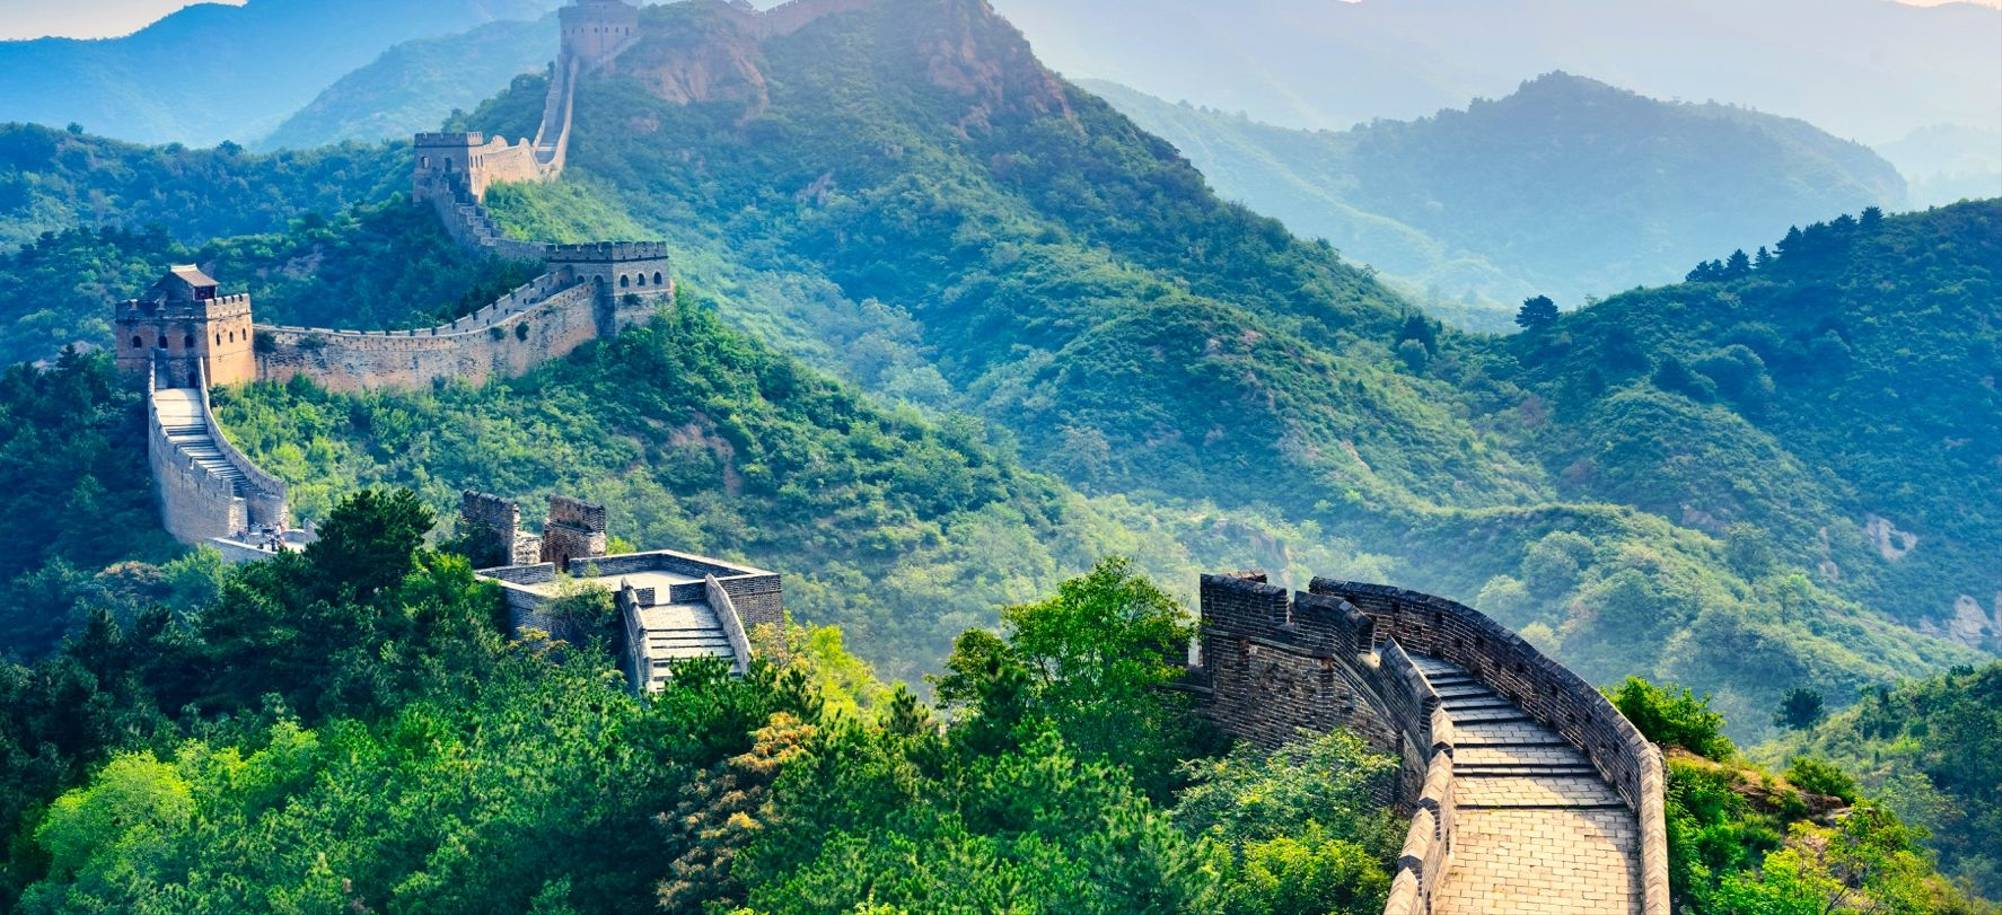 Beijing   Great Wall Of China   Itinerary Desktop 2